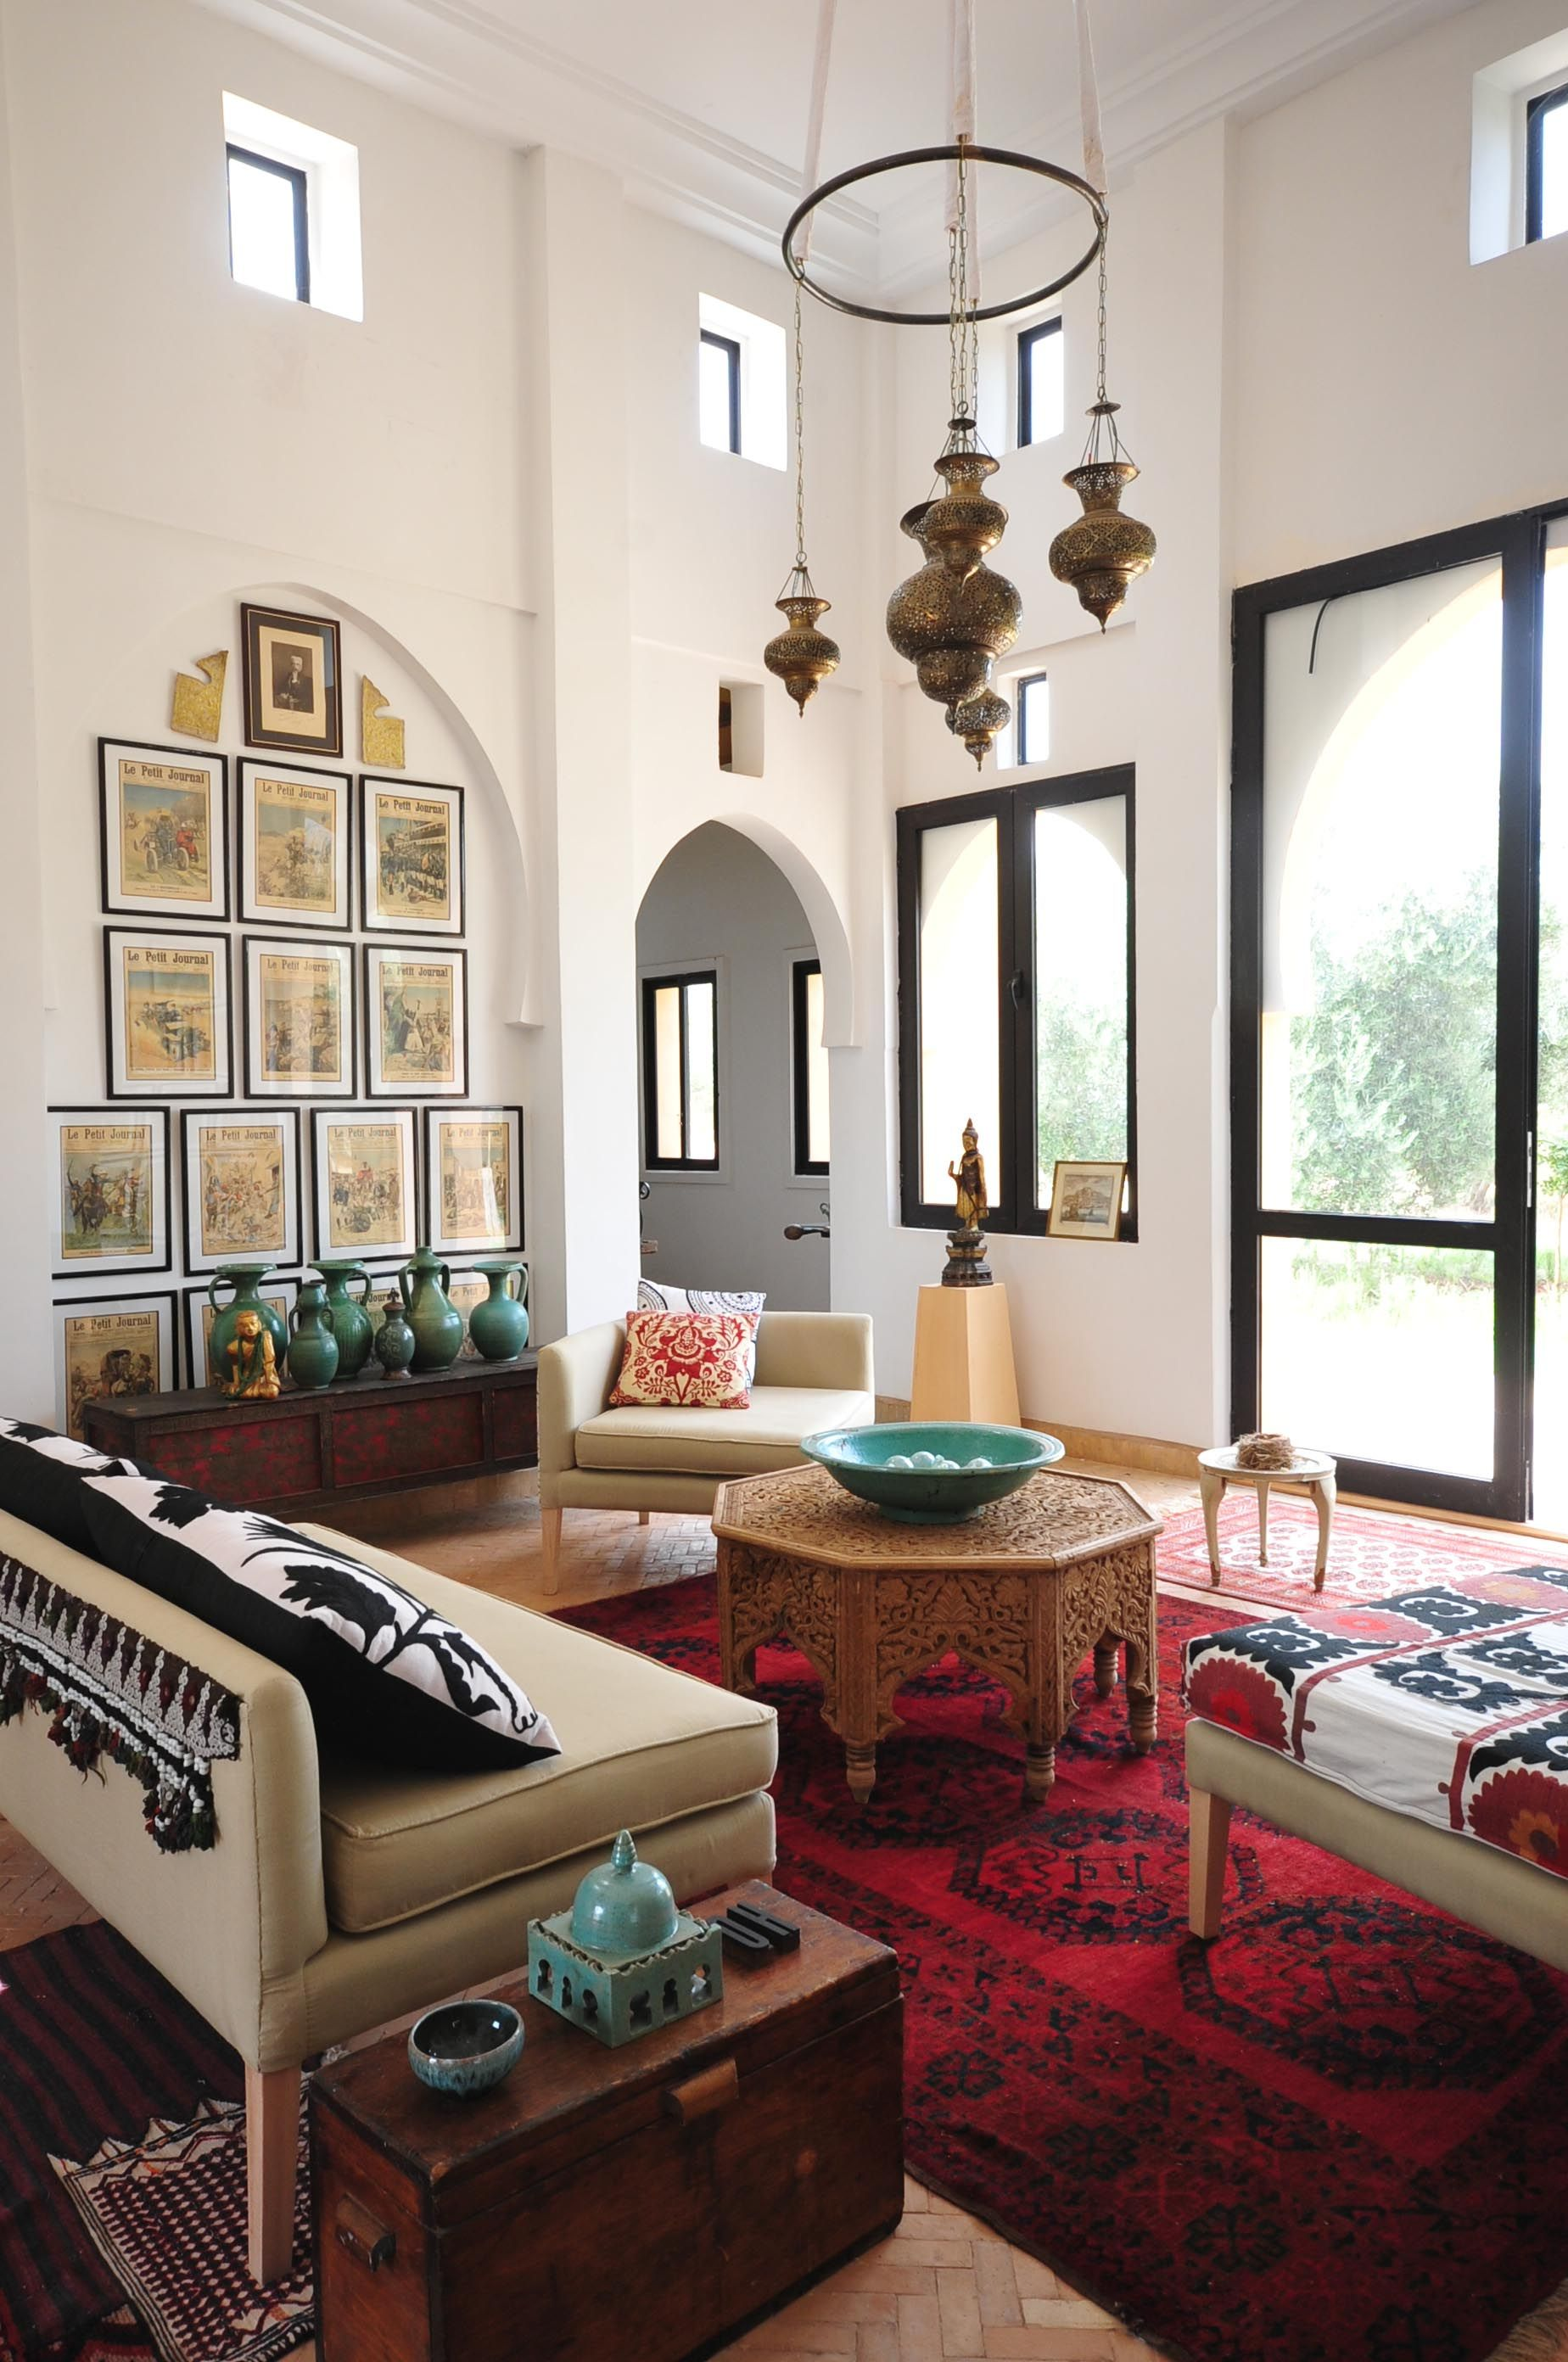 On Easy Ways To Incorporate Moroccan Decor Moroccan Living Room Moroccan Interiors Moroccan Decor